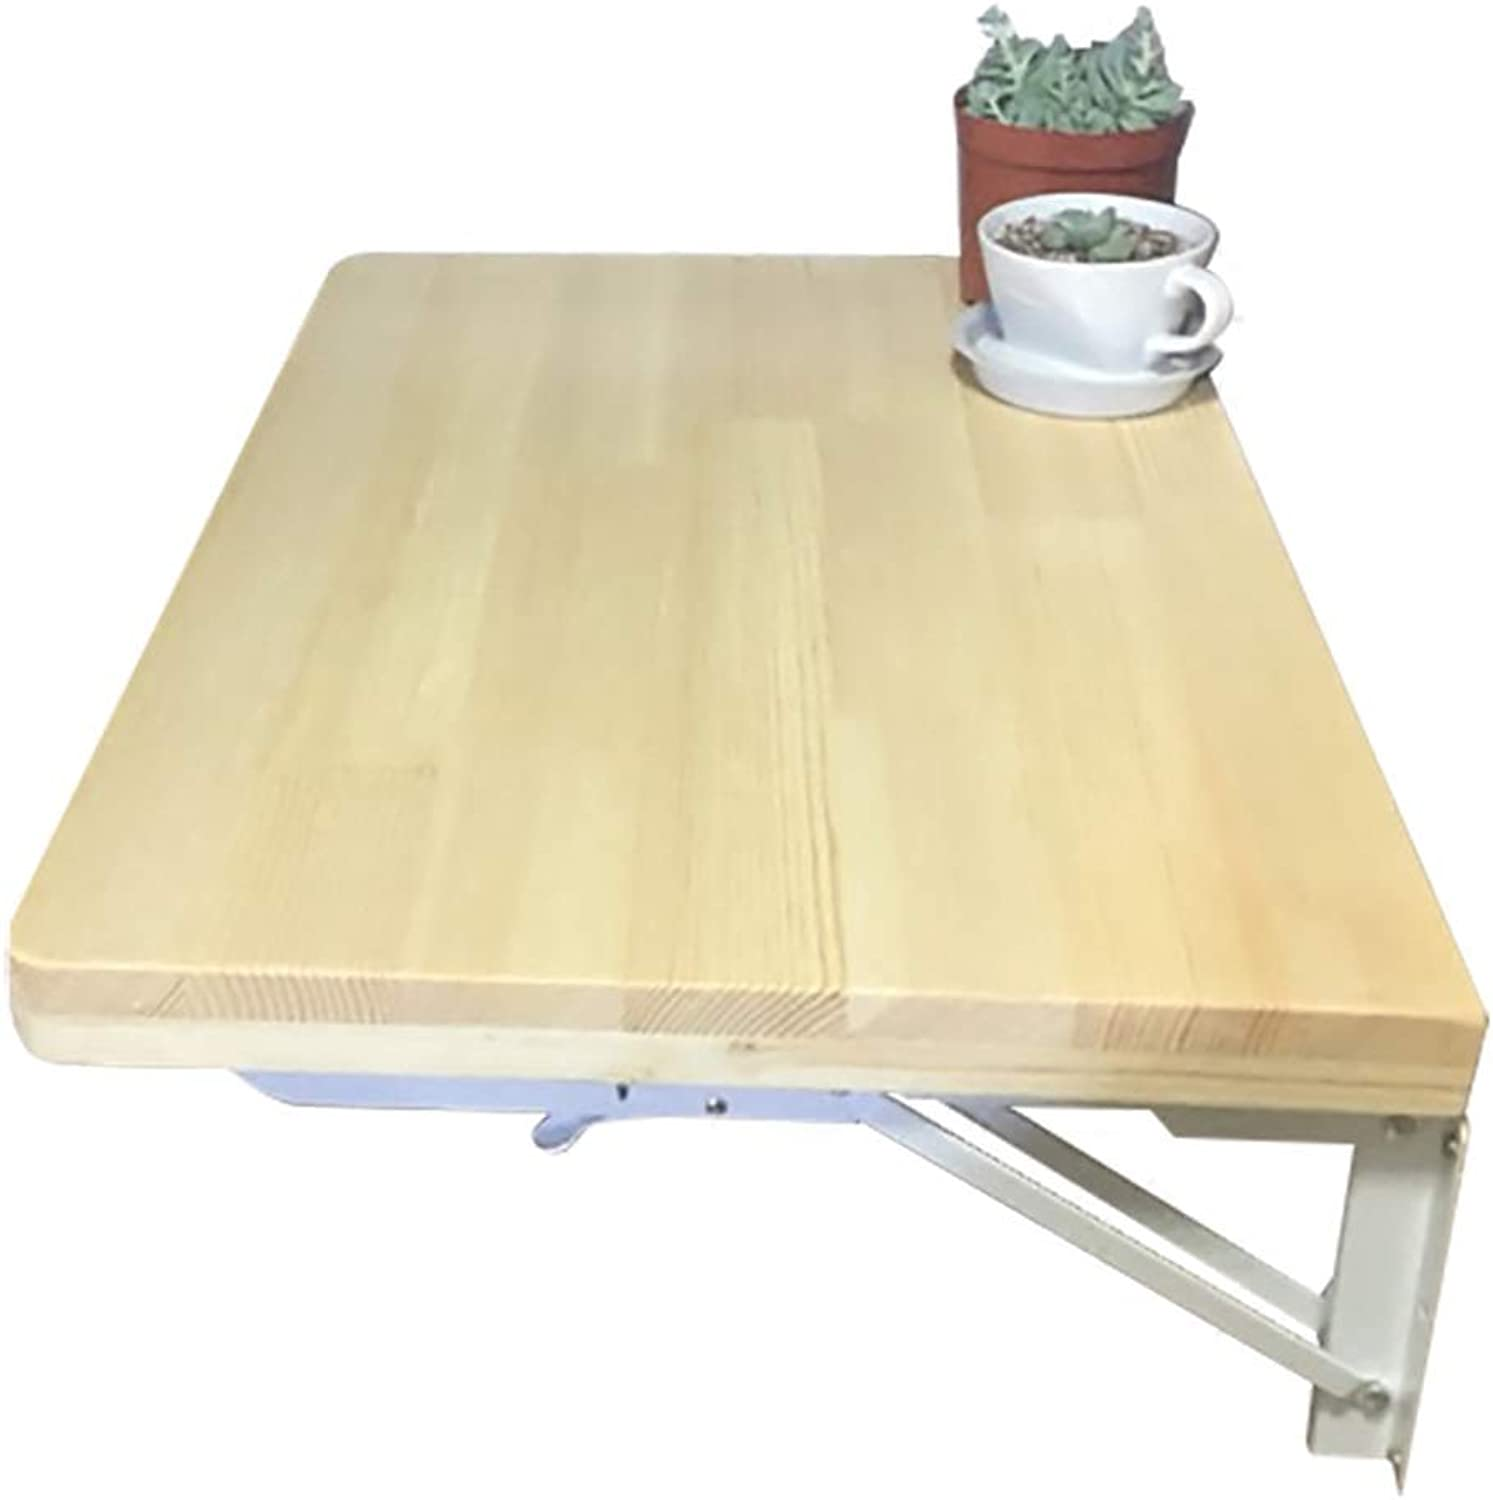 WFFXLL Folding Table Deciduous Wood Wall Hanging Table Study Table Computer Table Wall Table Bookcase (Size   60x40cm)